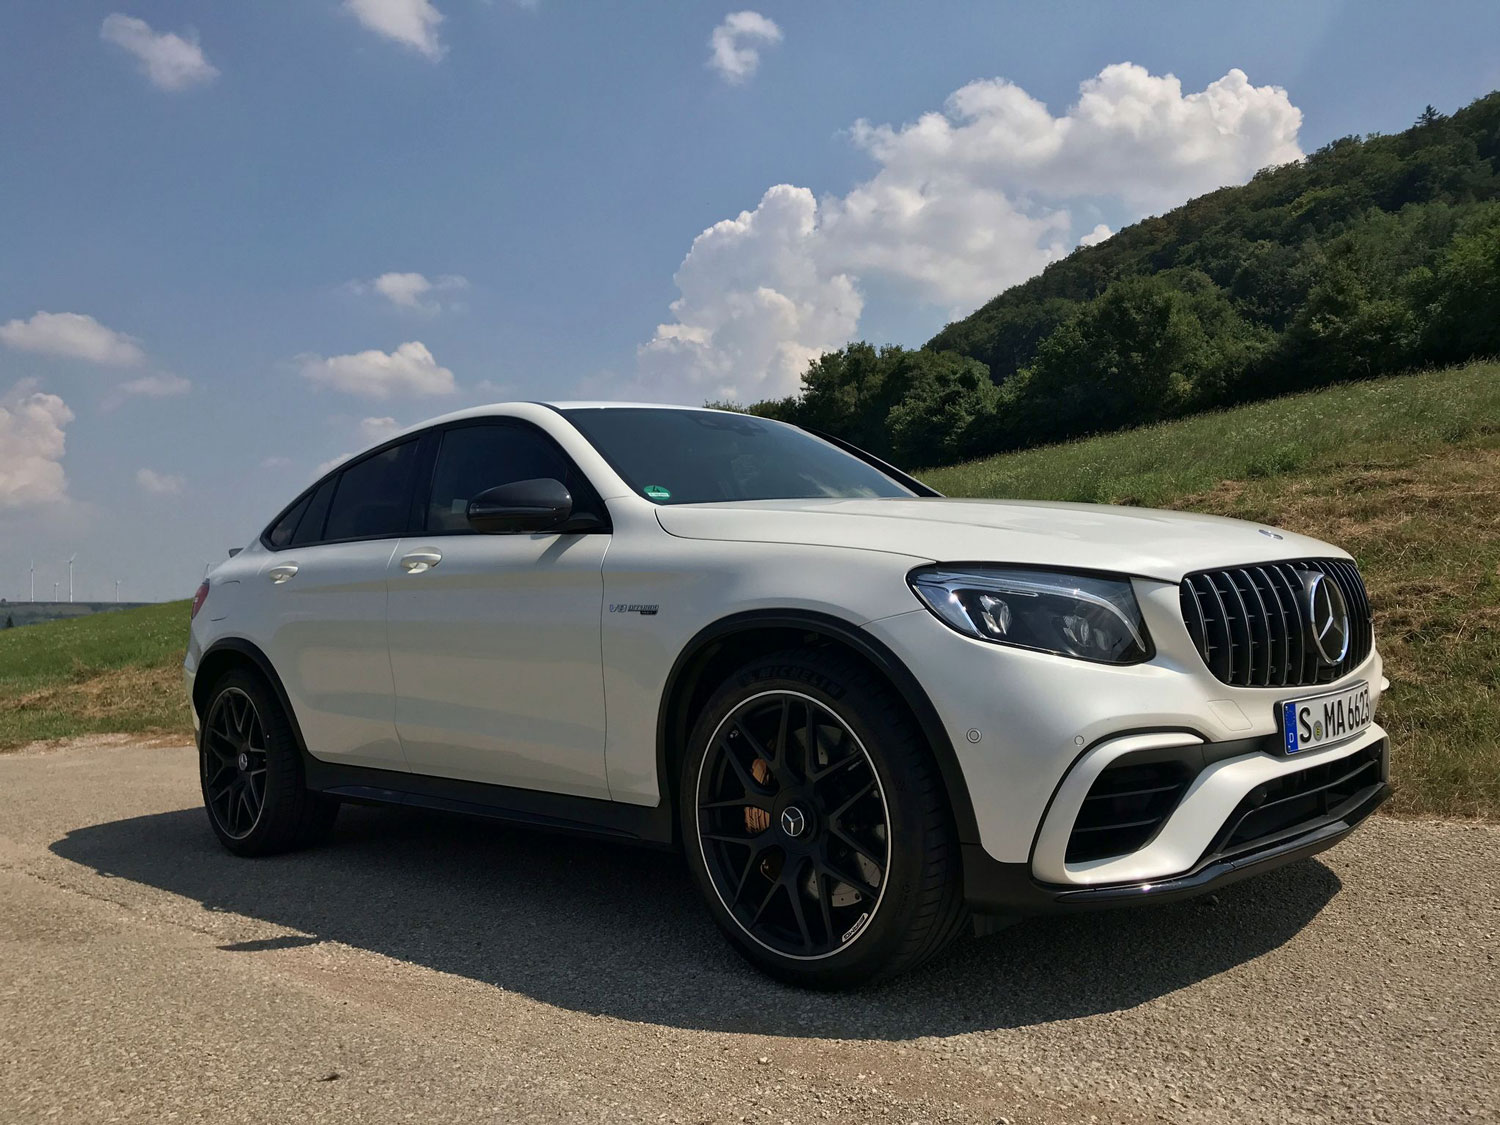 Новий Mercedes-AMG GLC 63 S 4MATIC екстер'єр